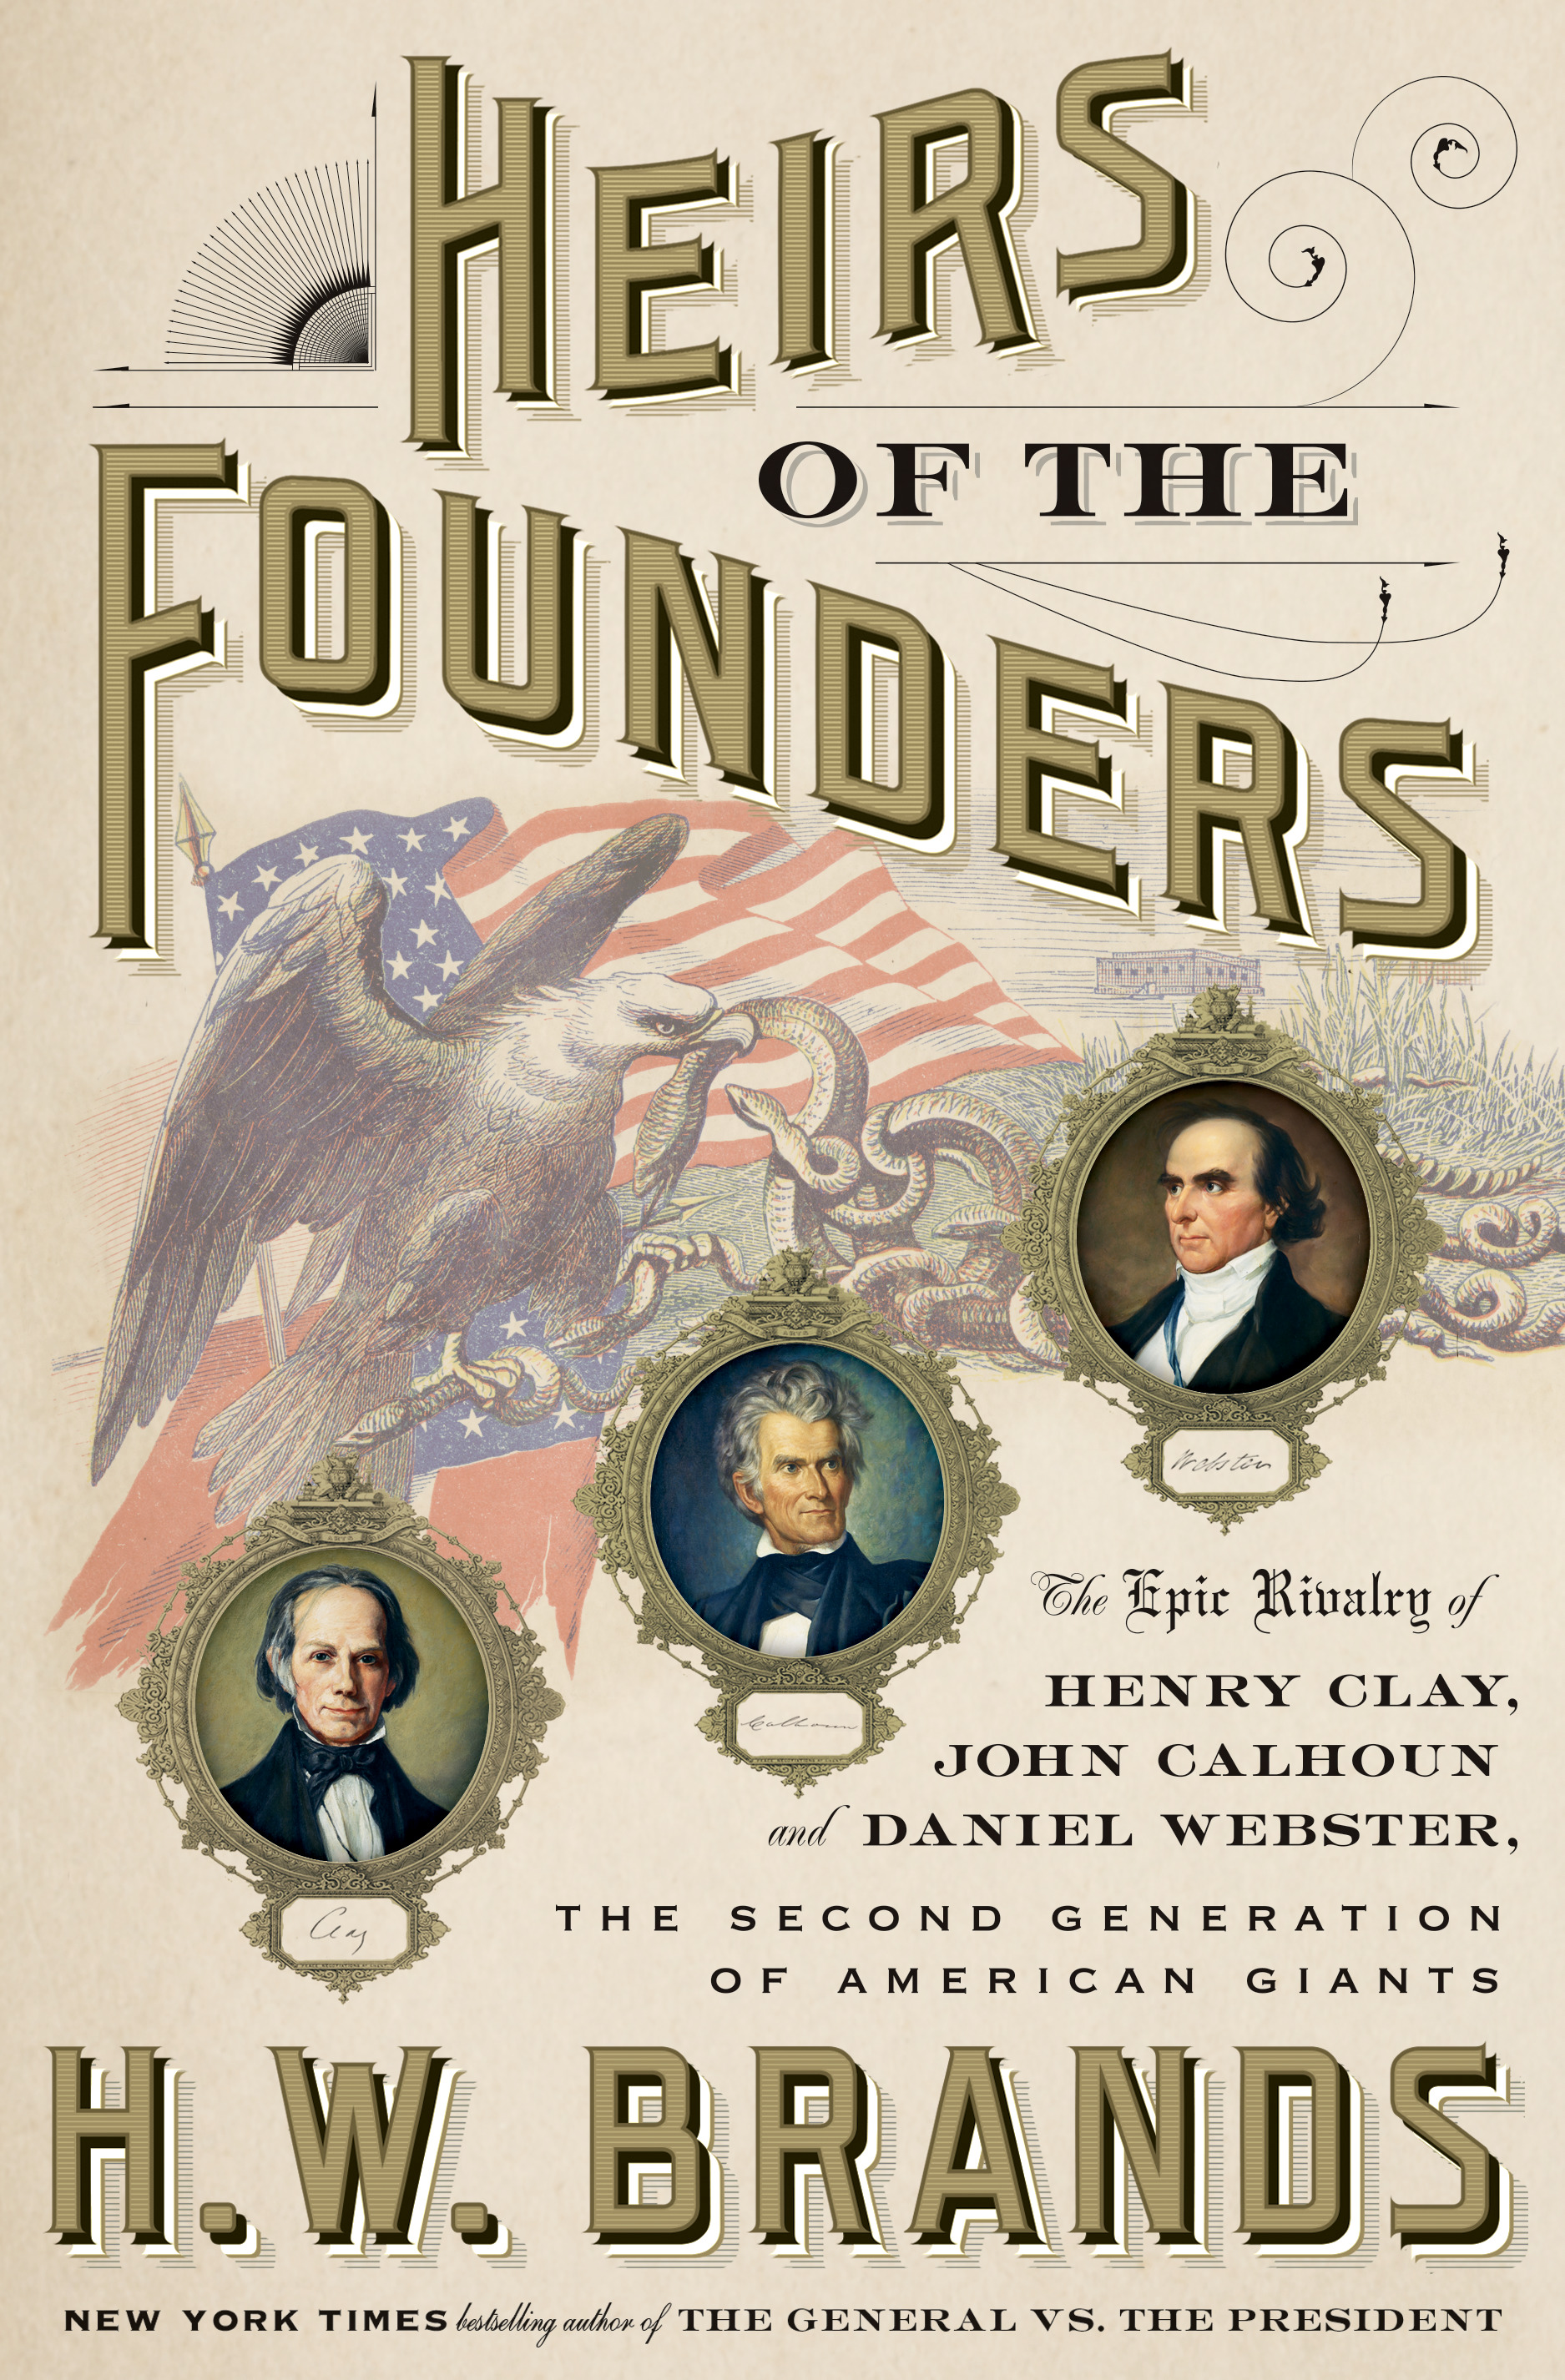 Authors LIVE! presents H.W. Brands and Heirs of the Founders